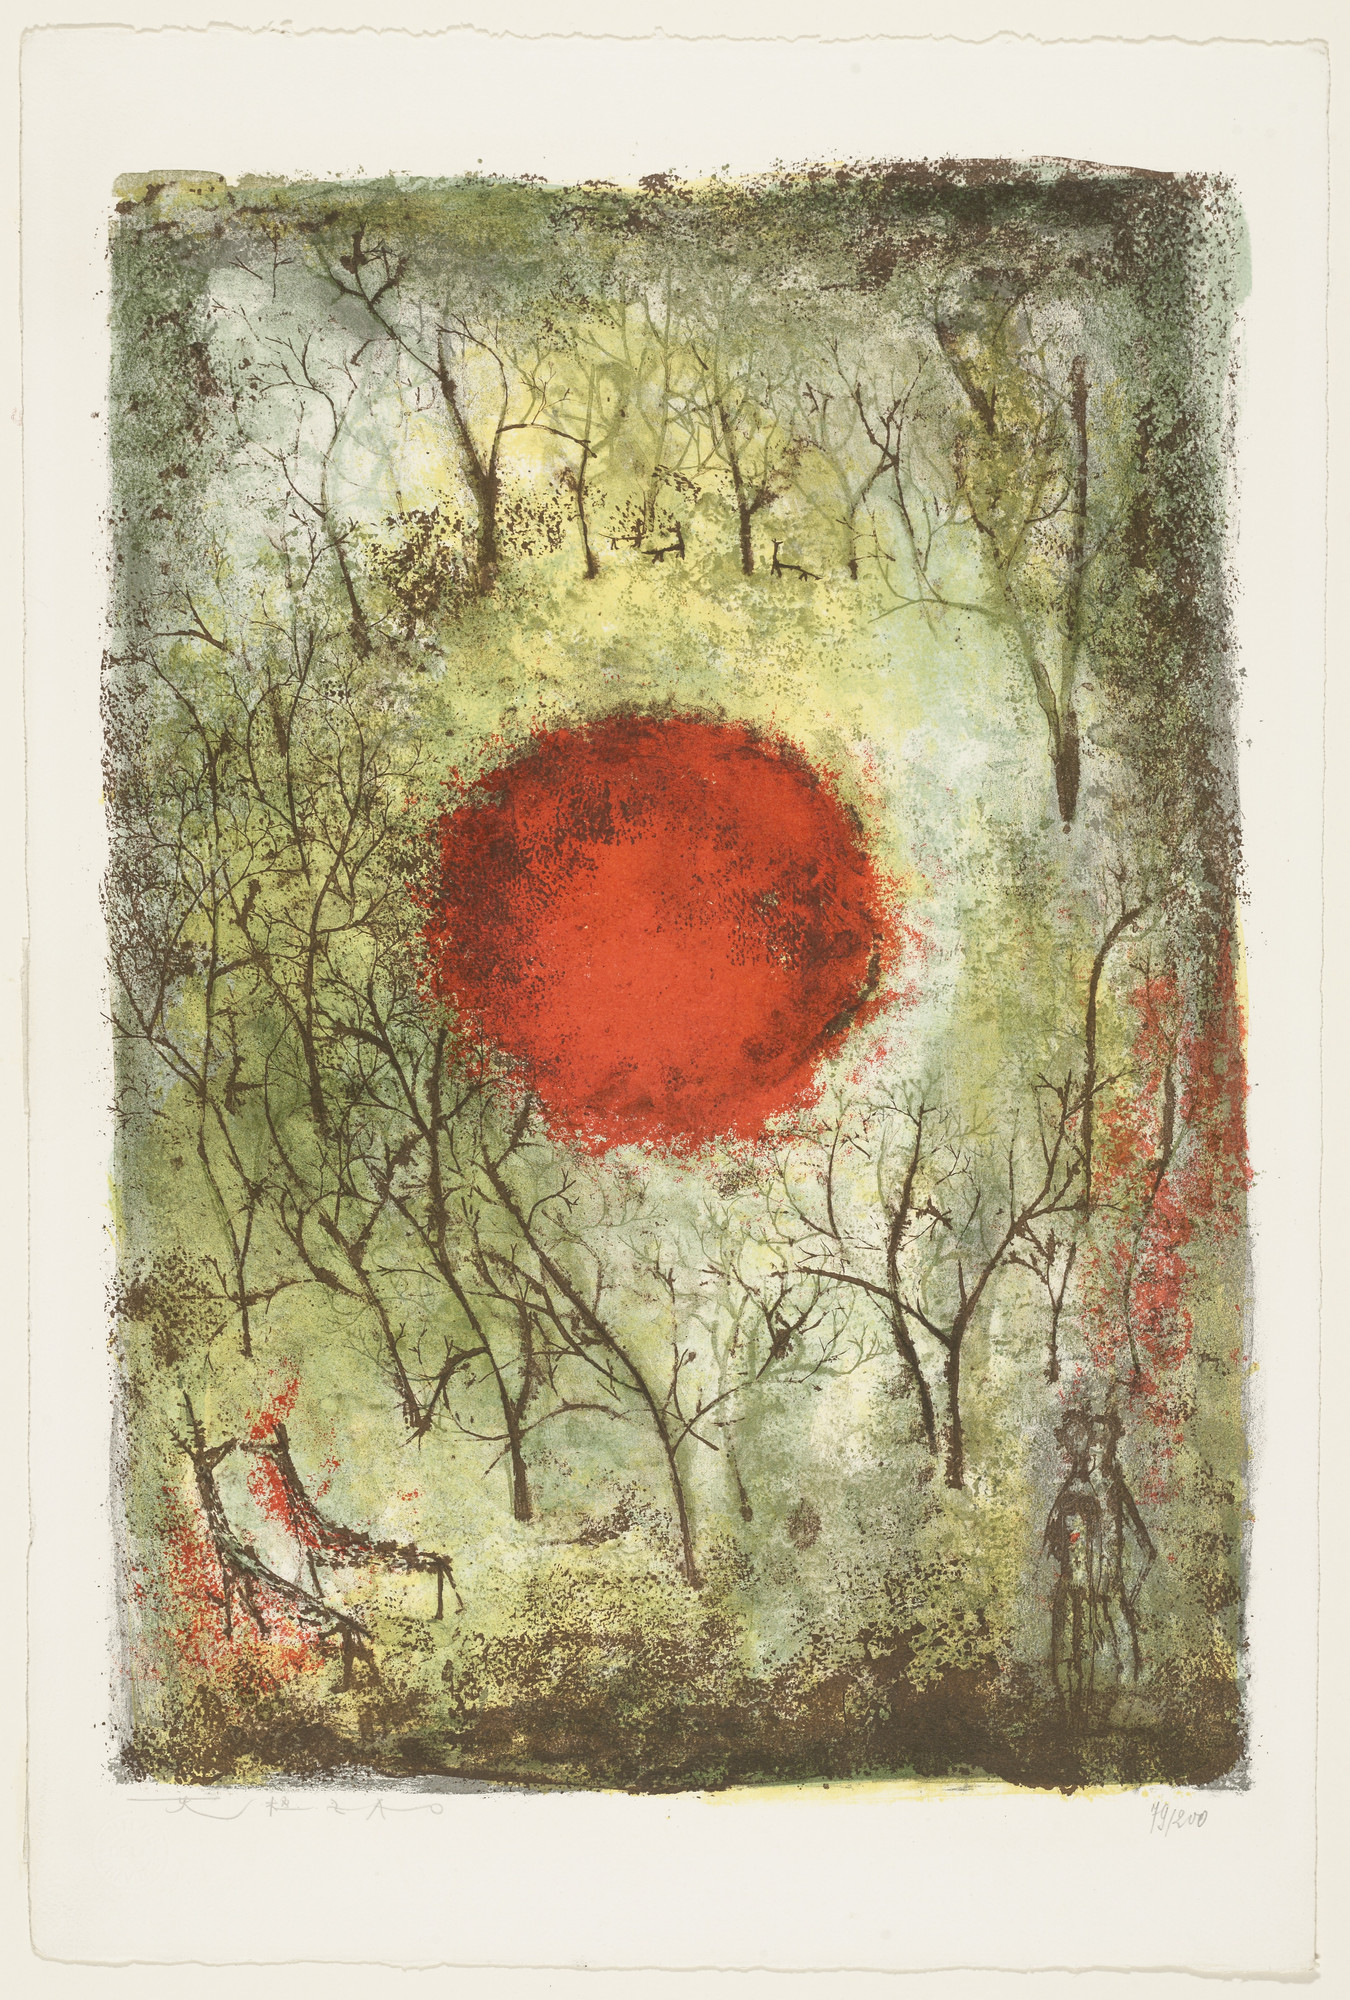 Zao Wou-ki. The red sun (Le soleil rouge). 1950